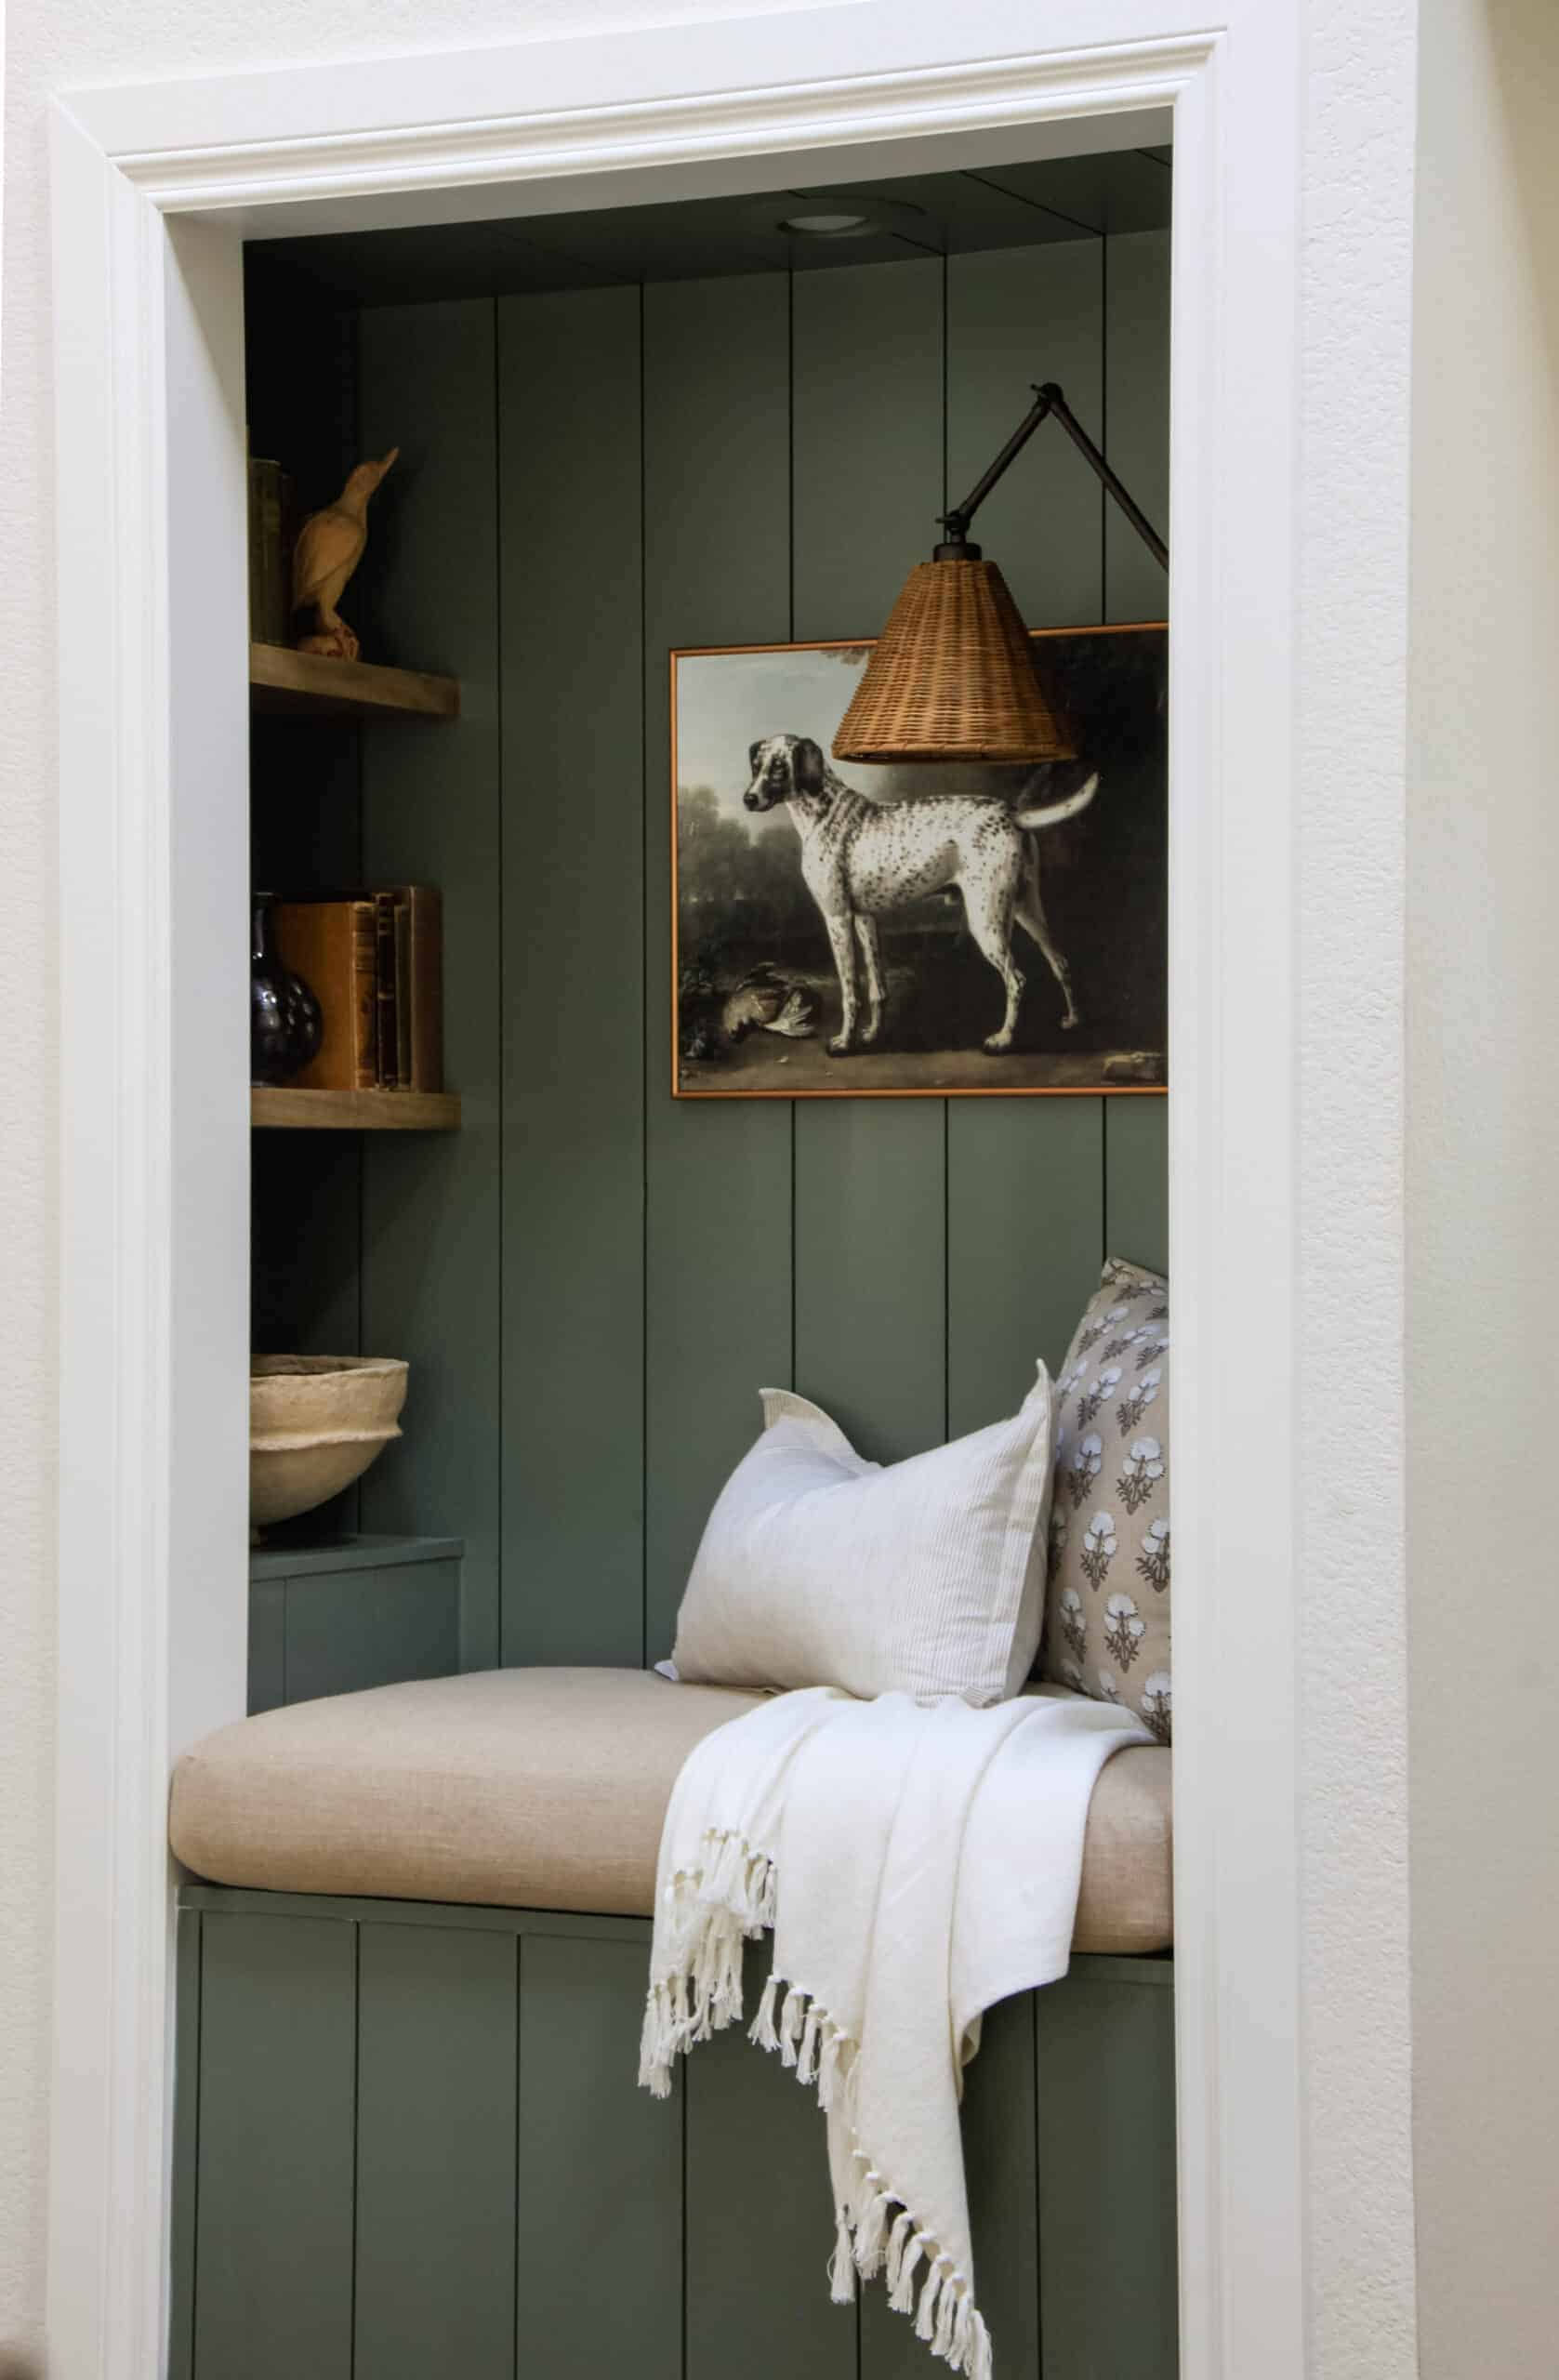 overstuffed bench cushion in reading nook